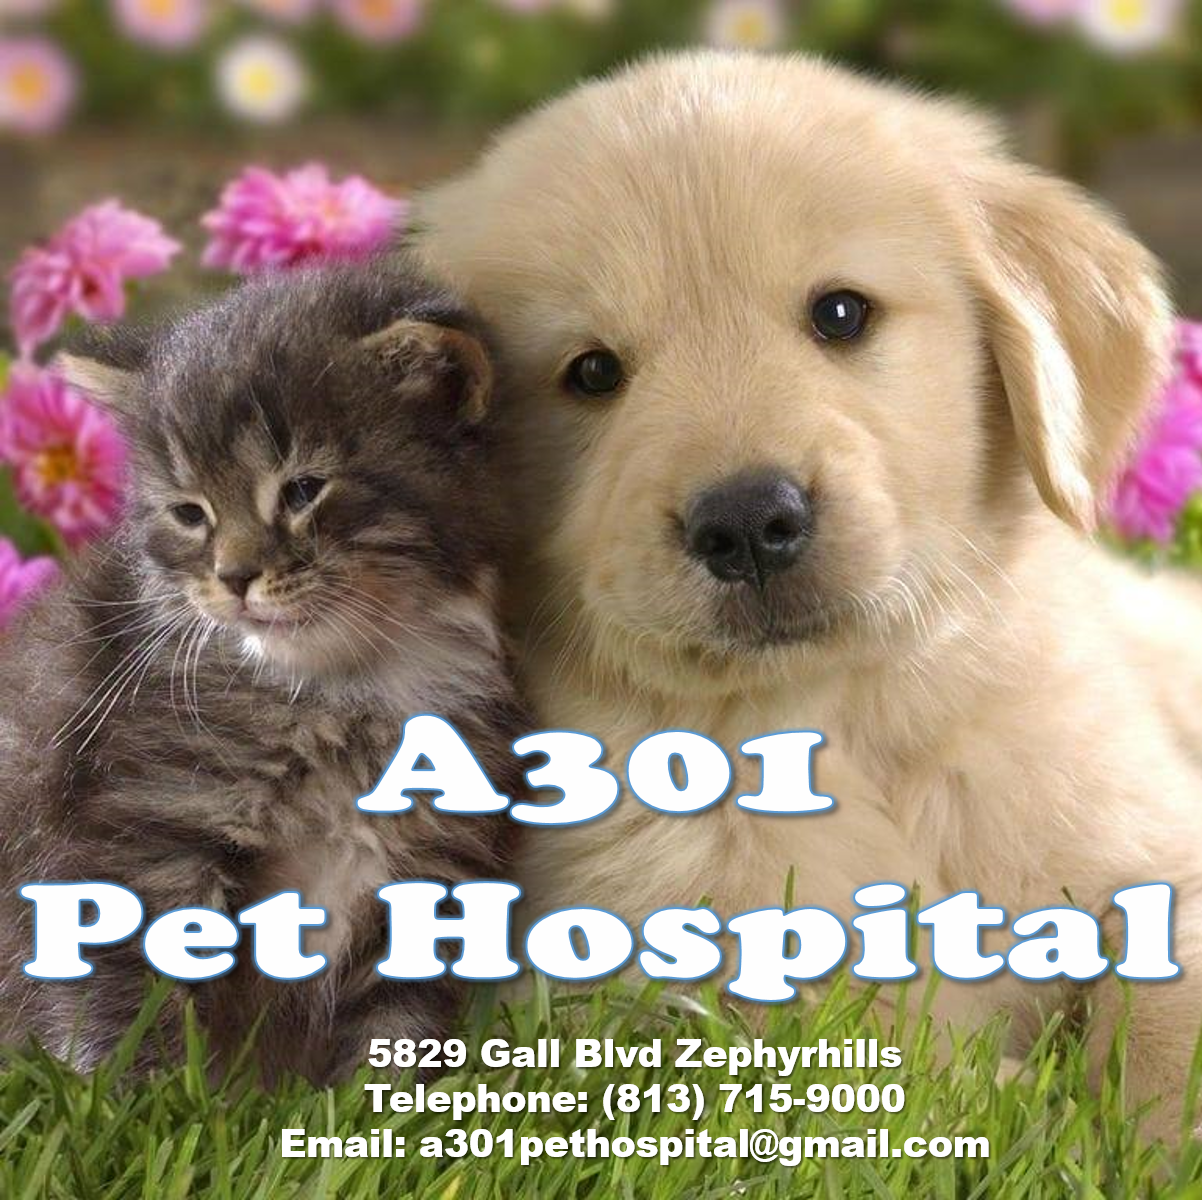 A 301 Pet Hospital    Address: 5829 Gall Blvd. Zephyrhills  Email:  a301pethospital@gmail.com   Telephone: 813-715-9000   Facebook